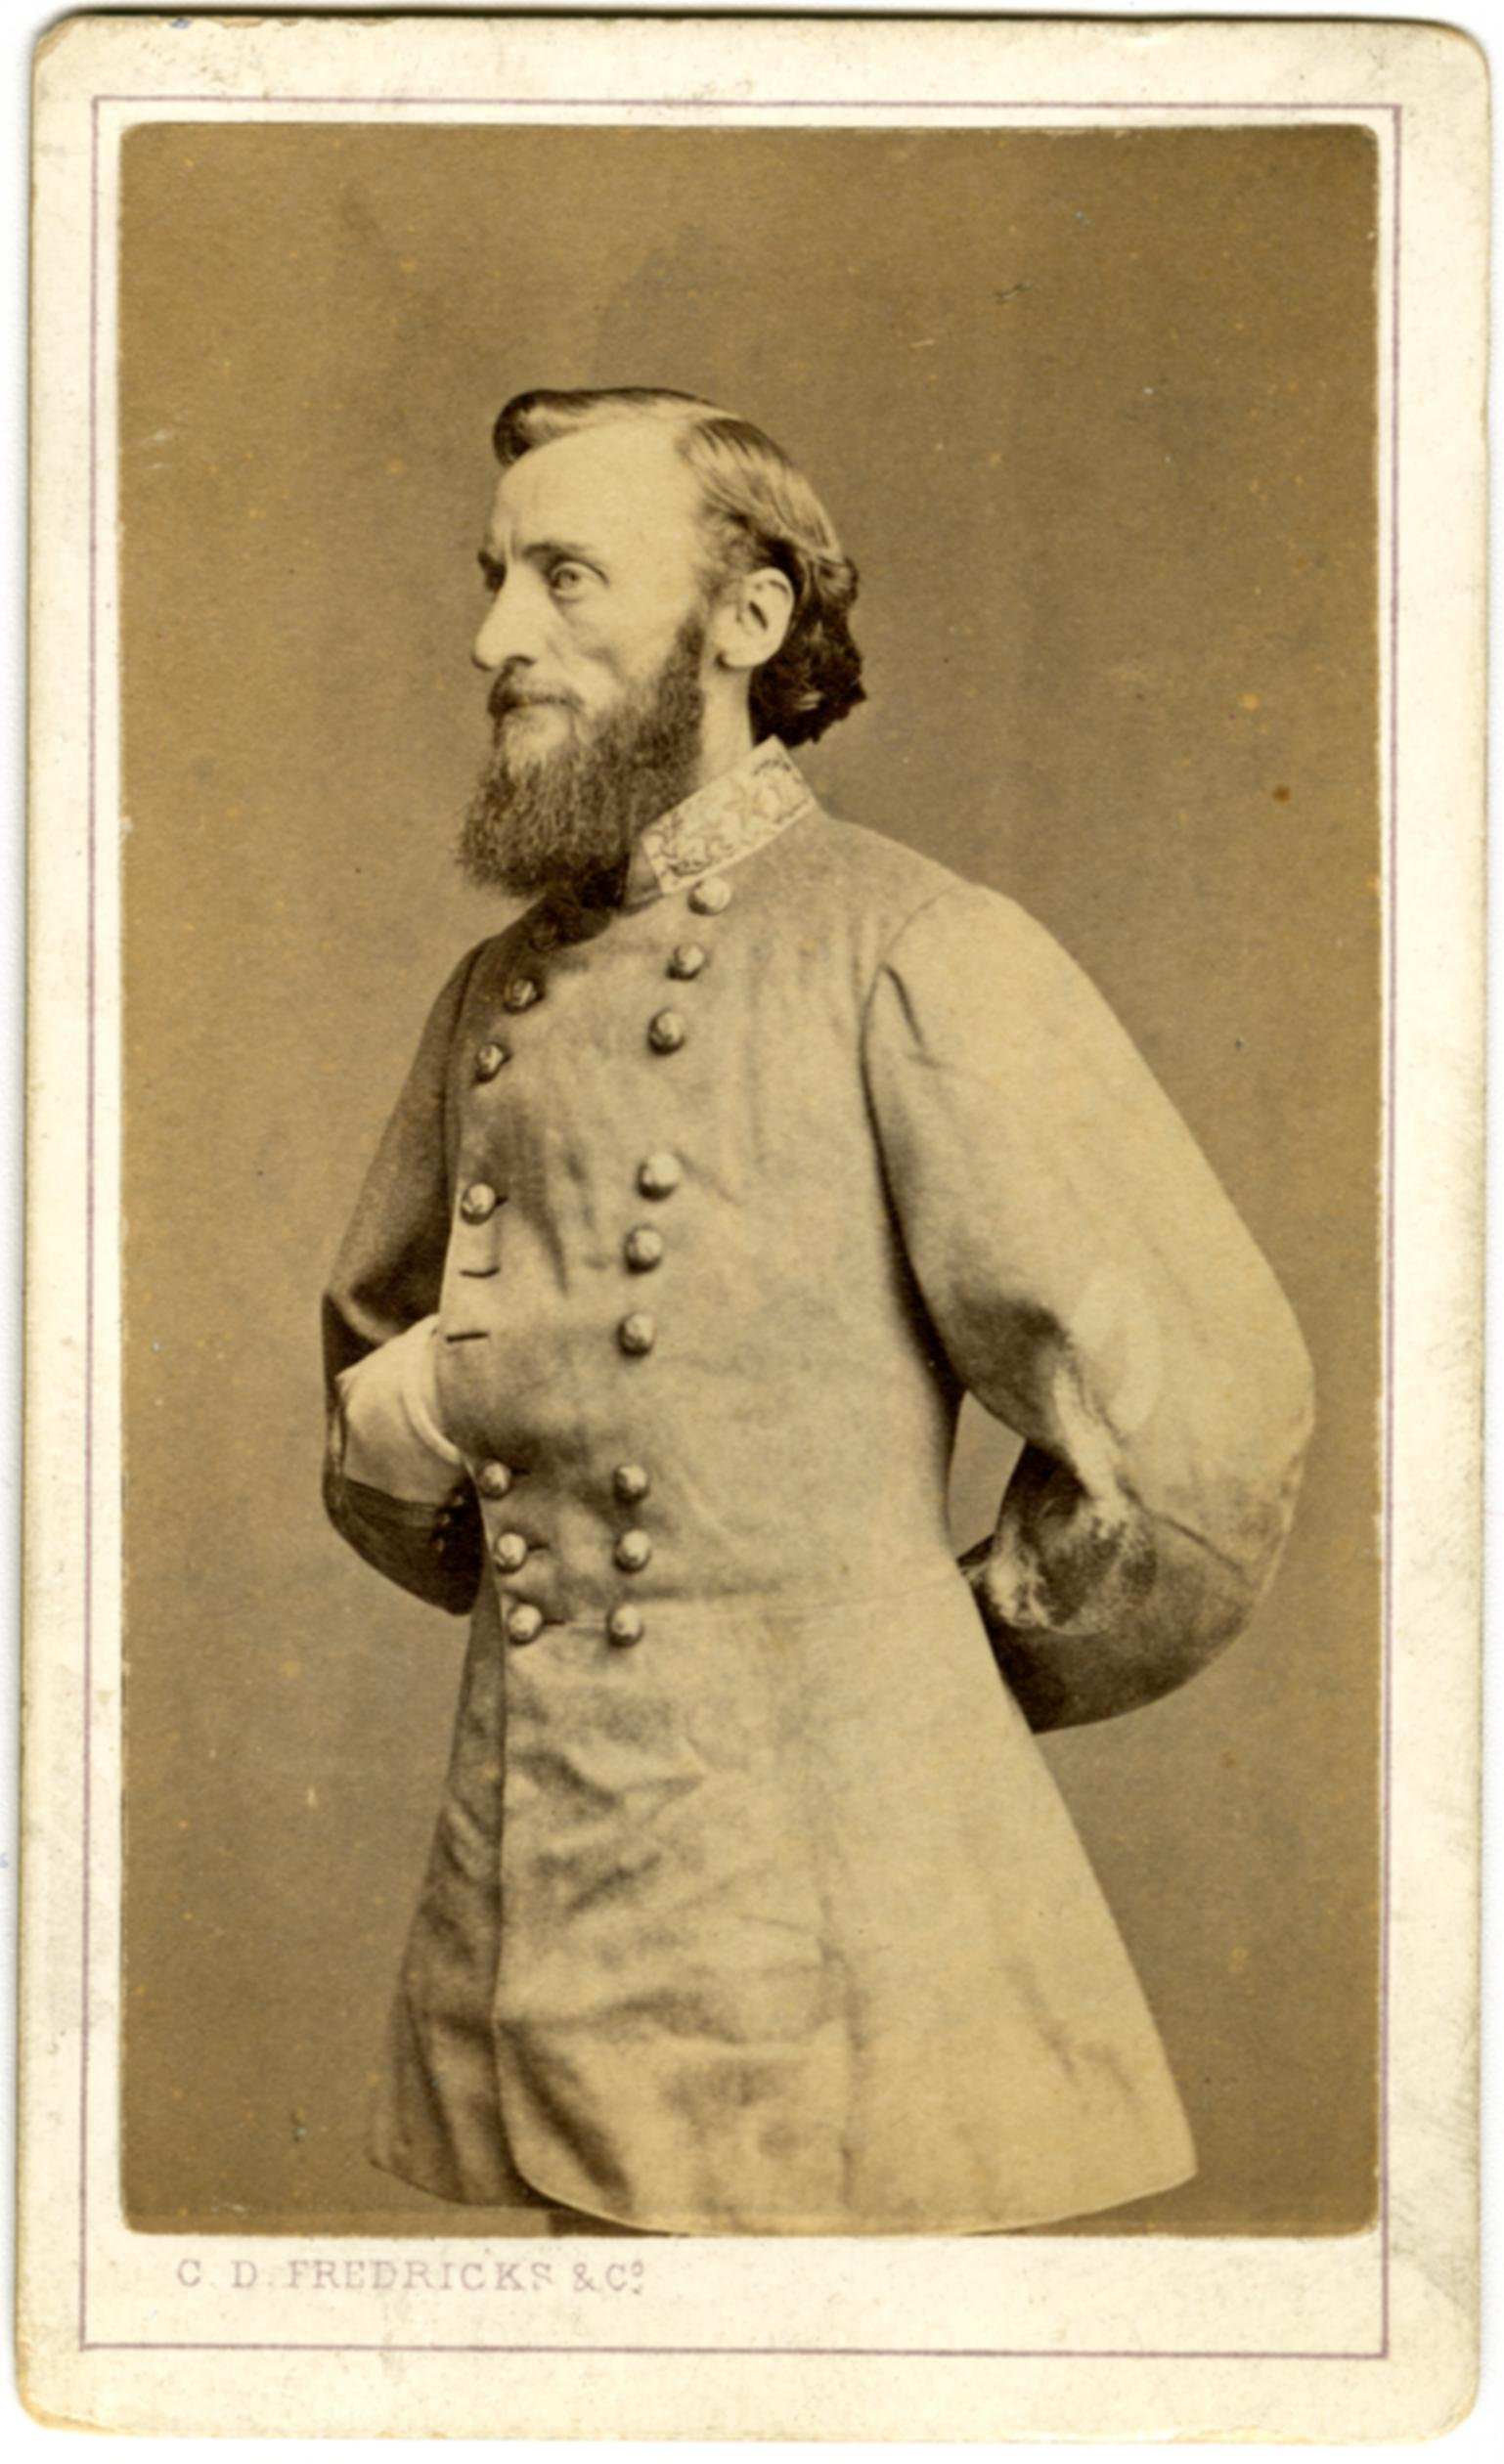 Confederate Brigadier General John Sappington Marmaduke, one of Price's division commanders. He was captured along with 600 Confederates at Mine Creek, and would spend the rest of the war a prisoner. He was later elected governor of Missouri in 1884.